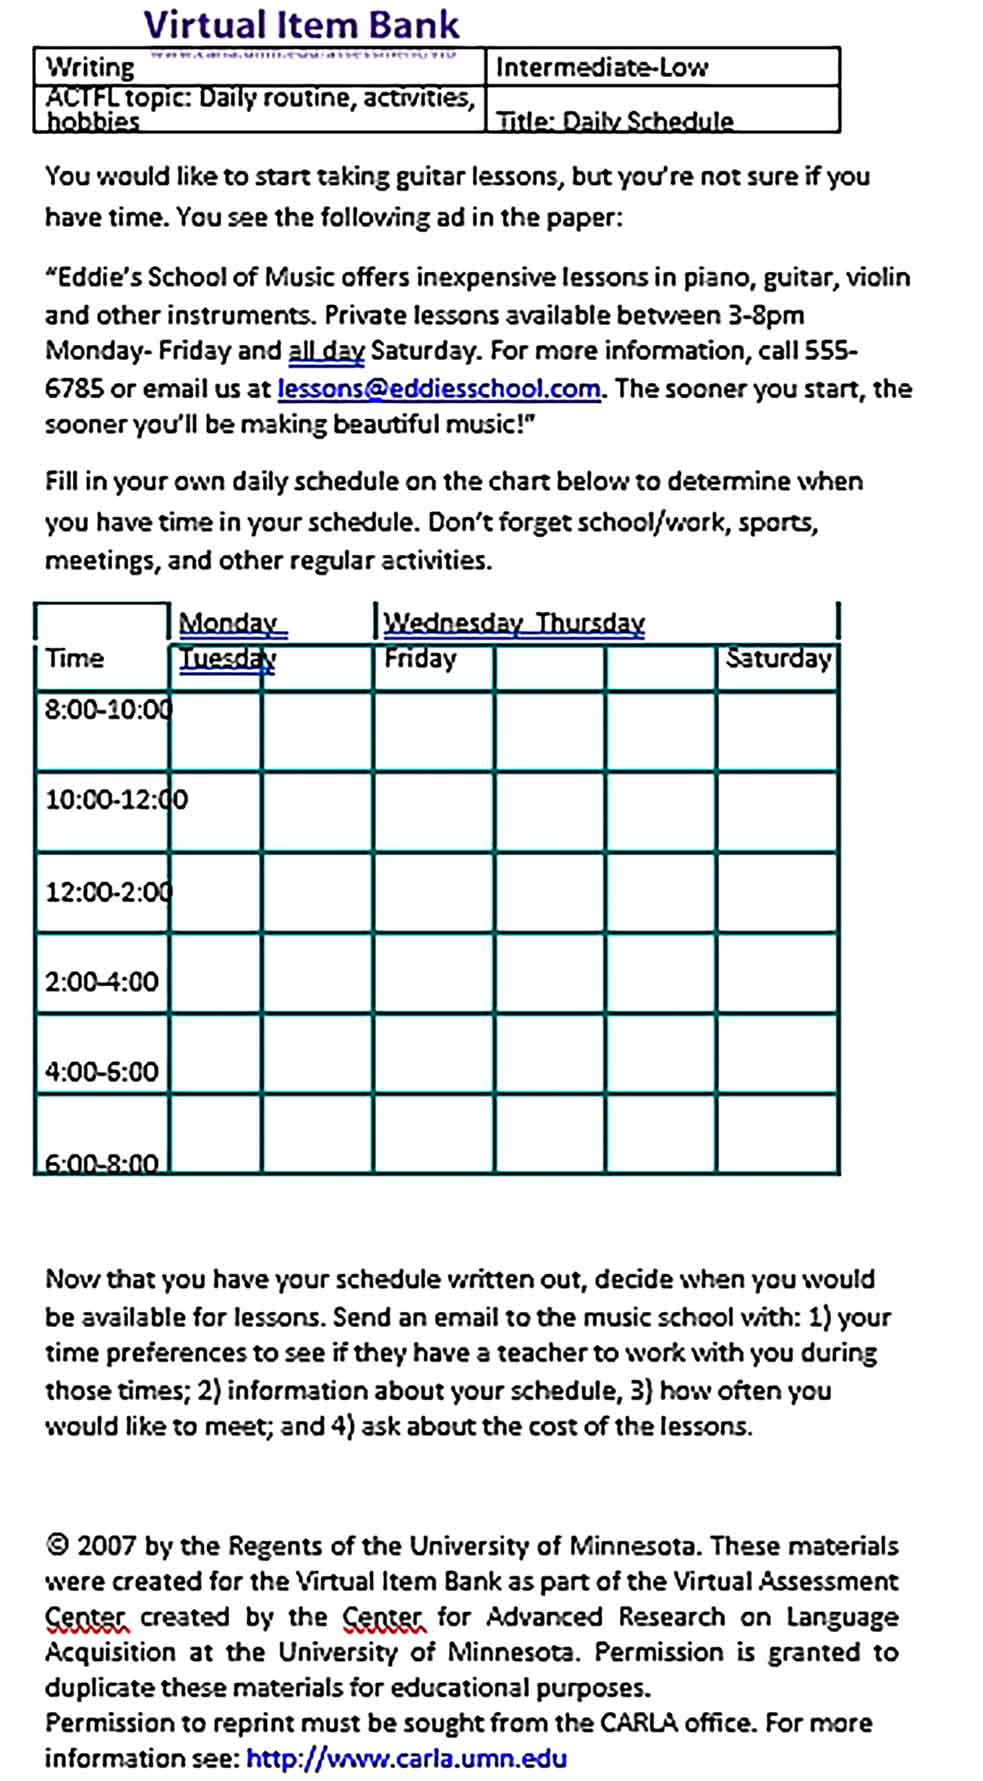 Template Daily Routine Schedule Sample Copy